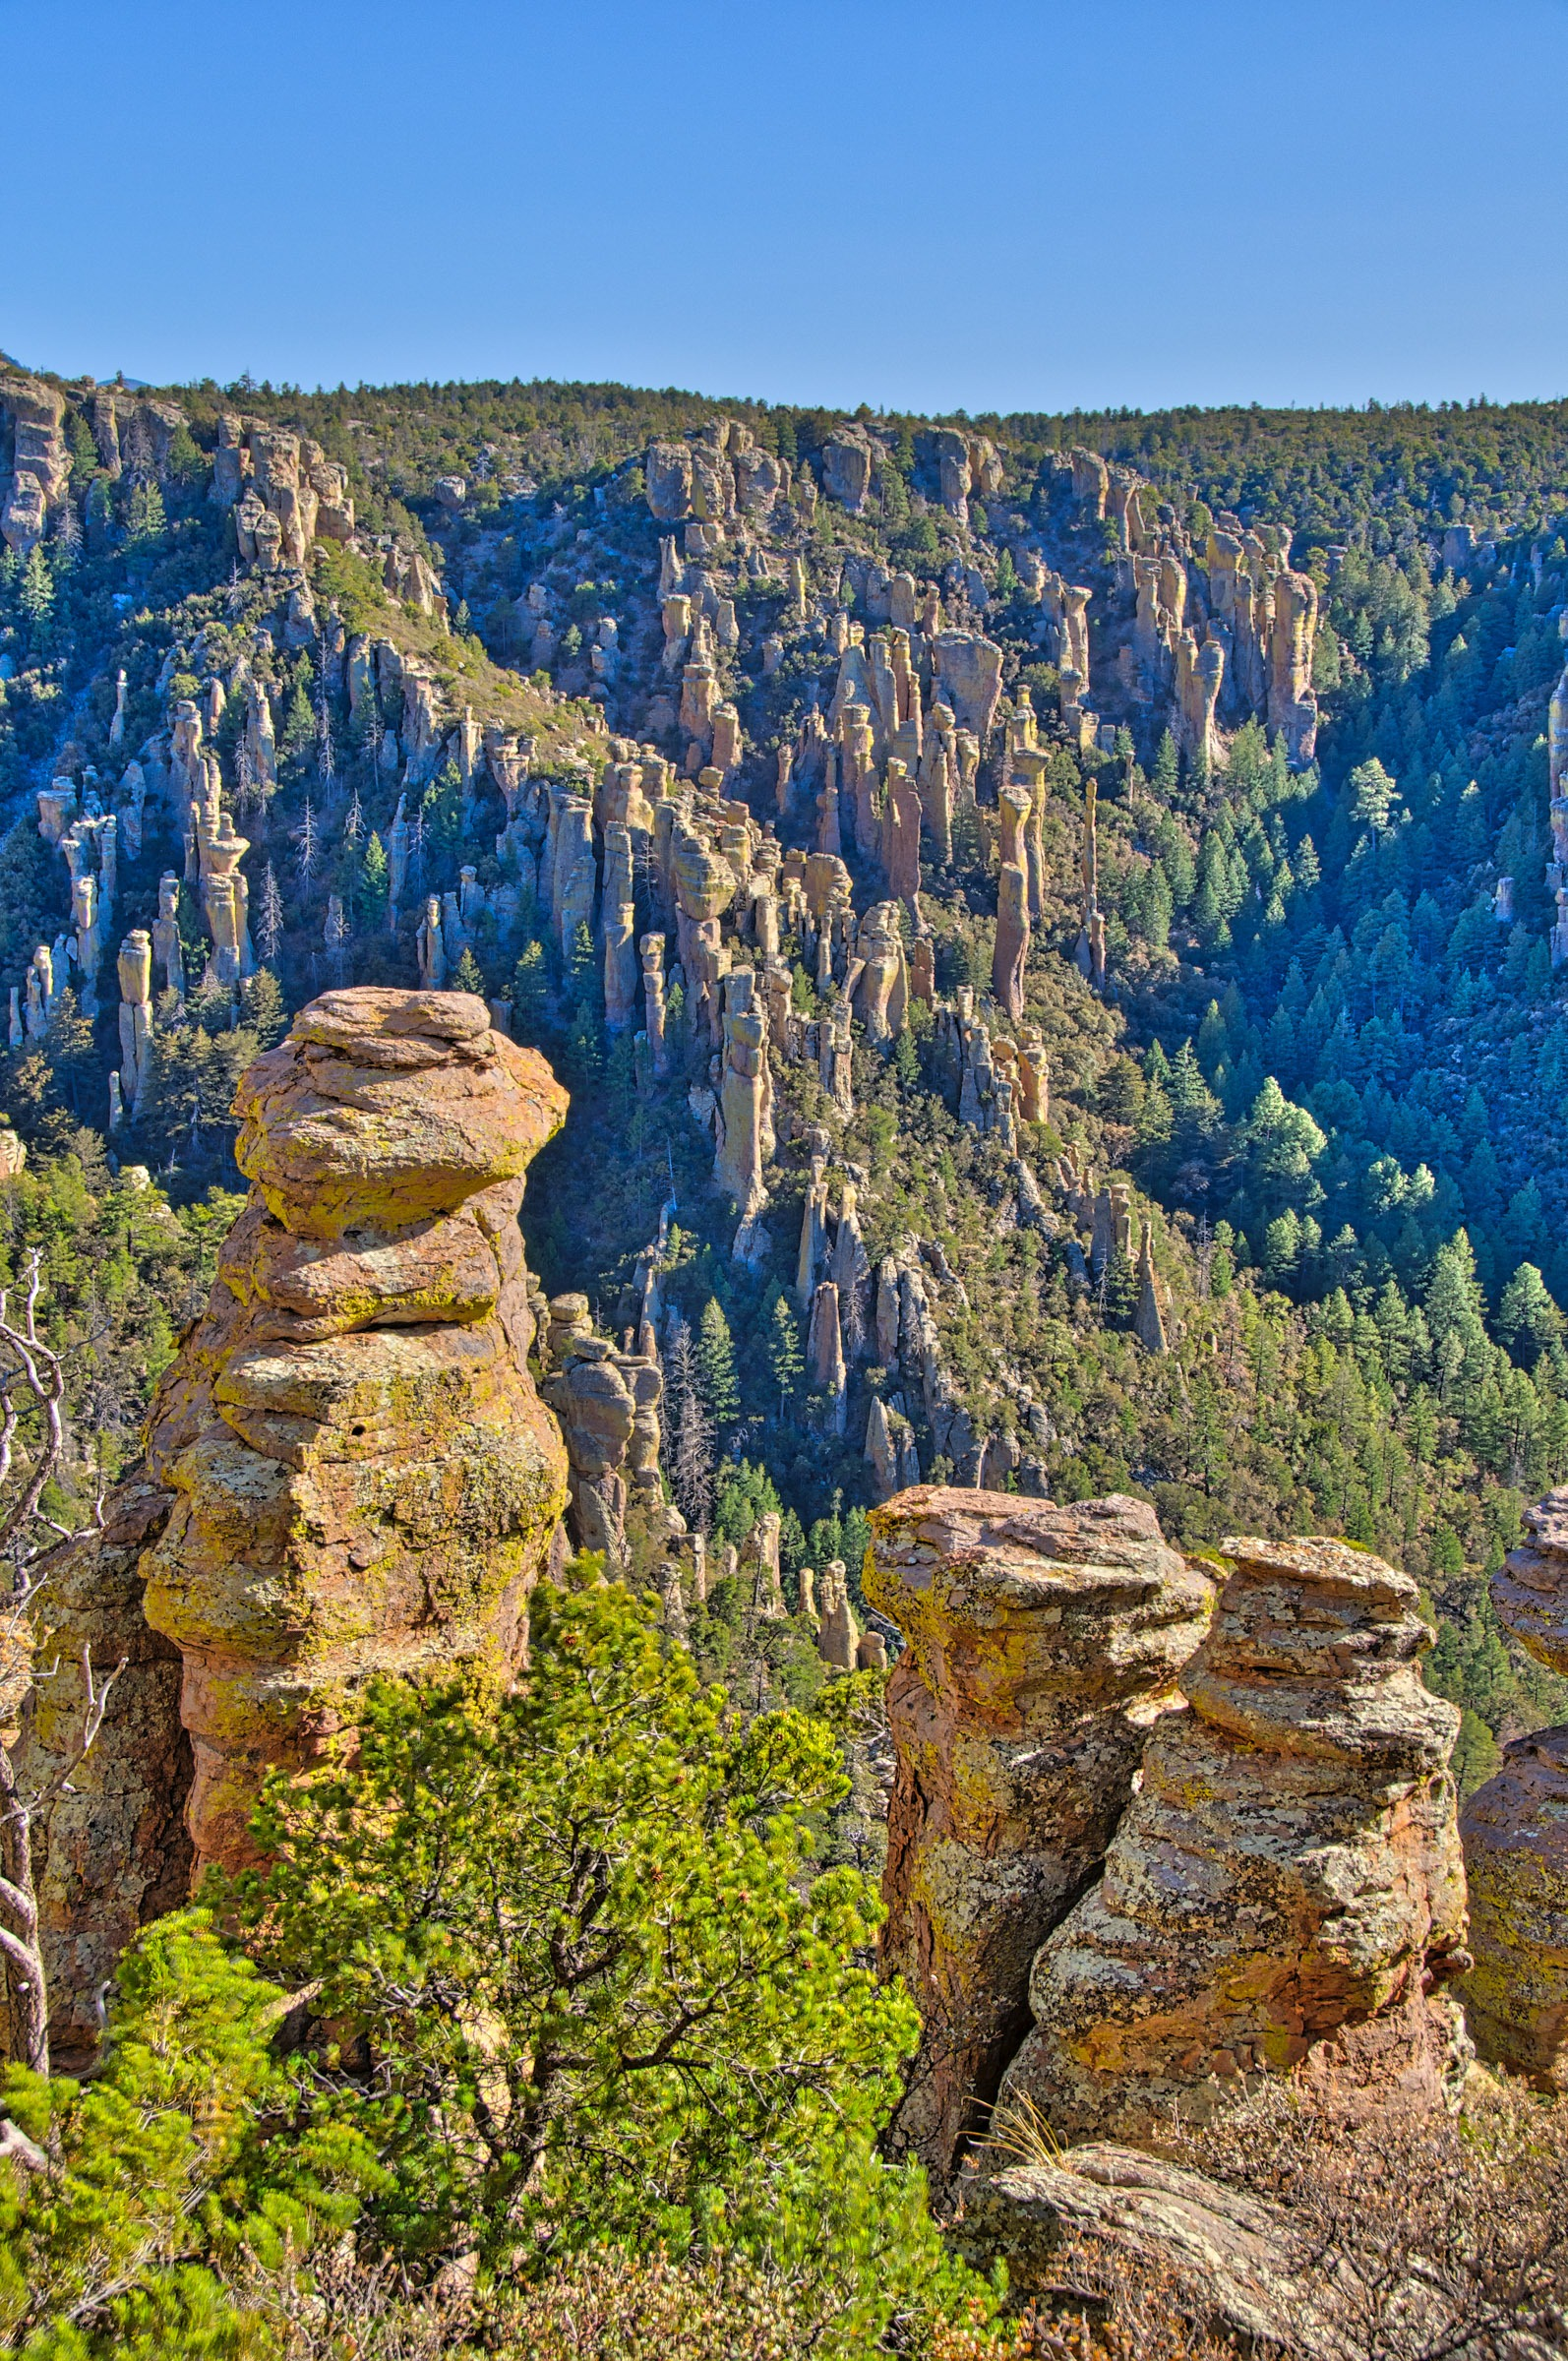 Canyon lined with rock columns north of Massai Point  in Chiricahua National Monument. The columns are formed of Rhyolite Canyon Tuff.